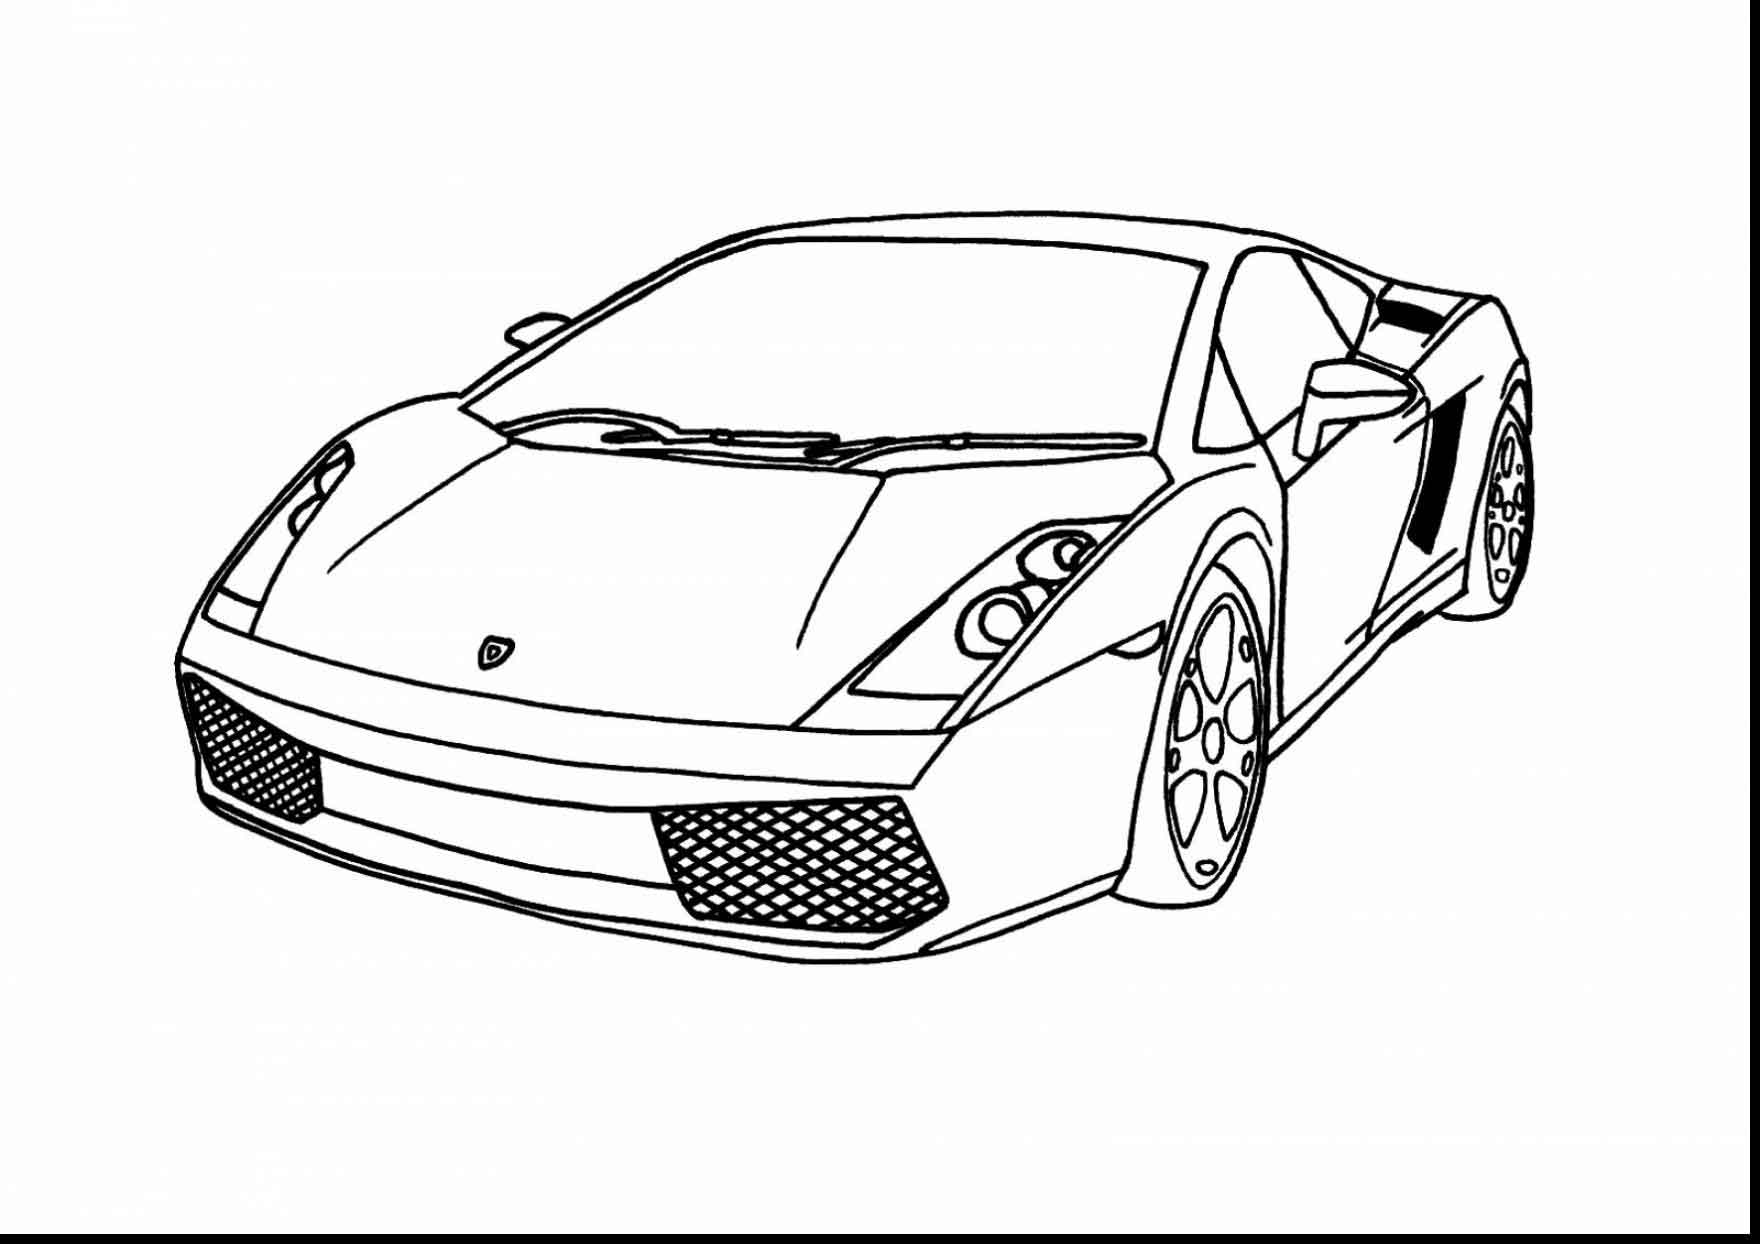 coloring car pictures to print car coloring pages best coloring pages for kids print pictures car to coloring 1 1